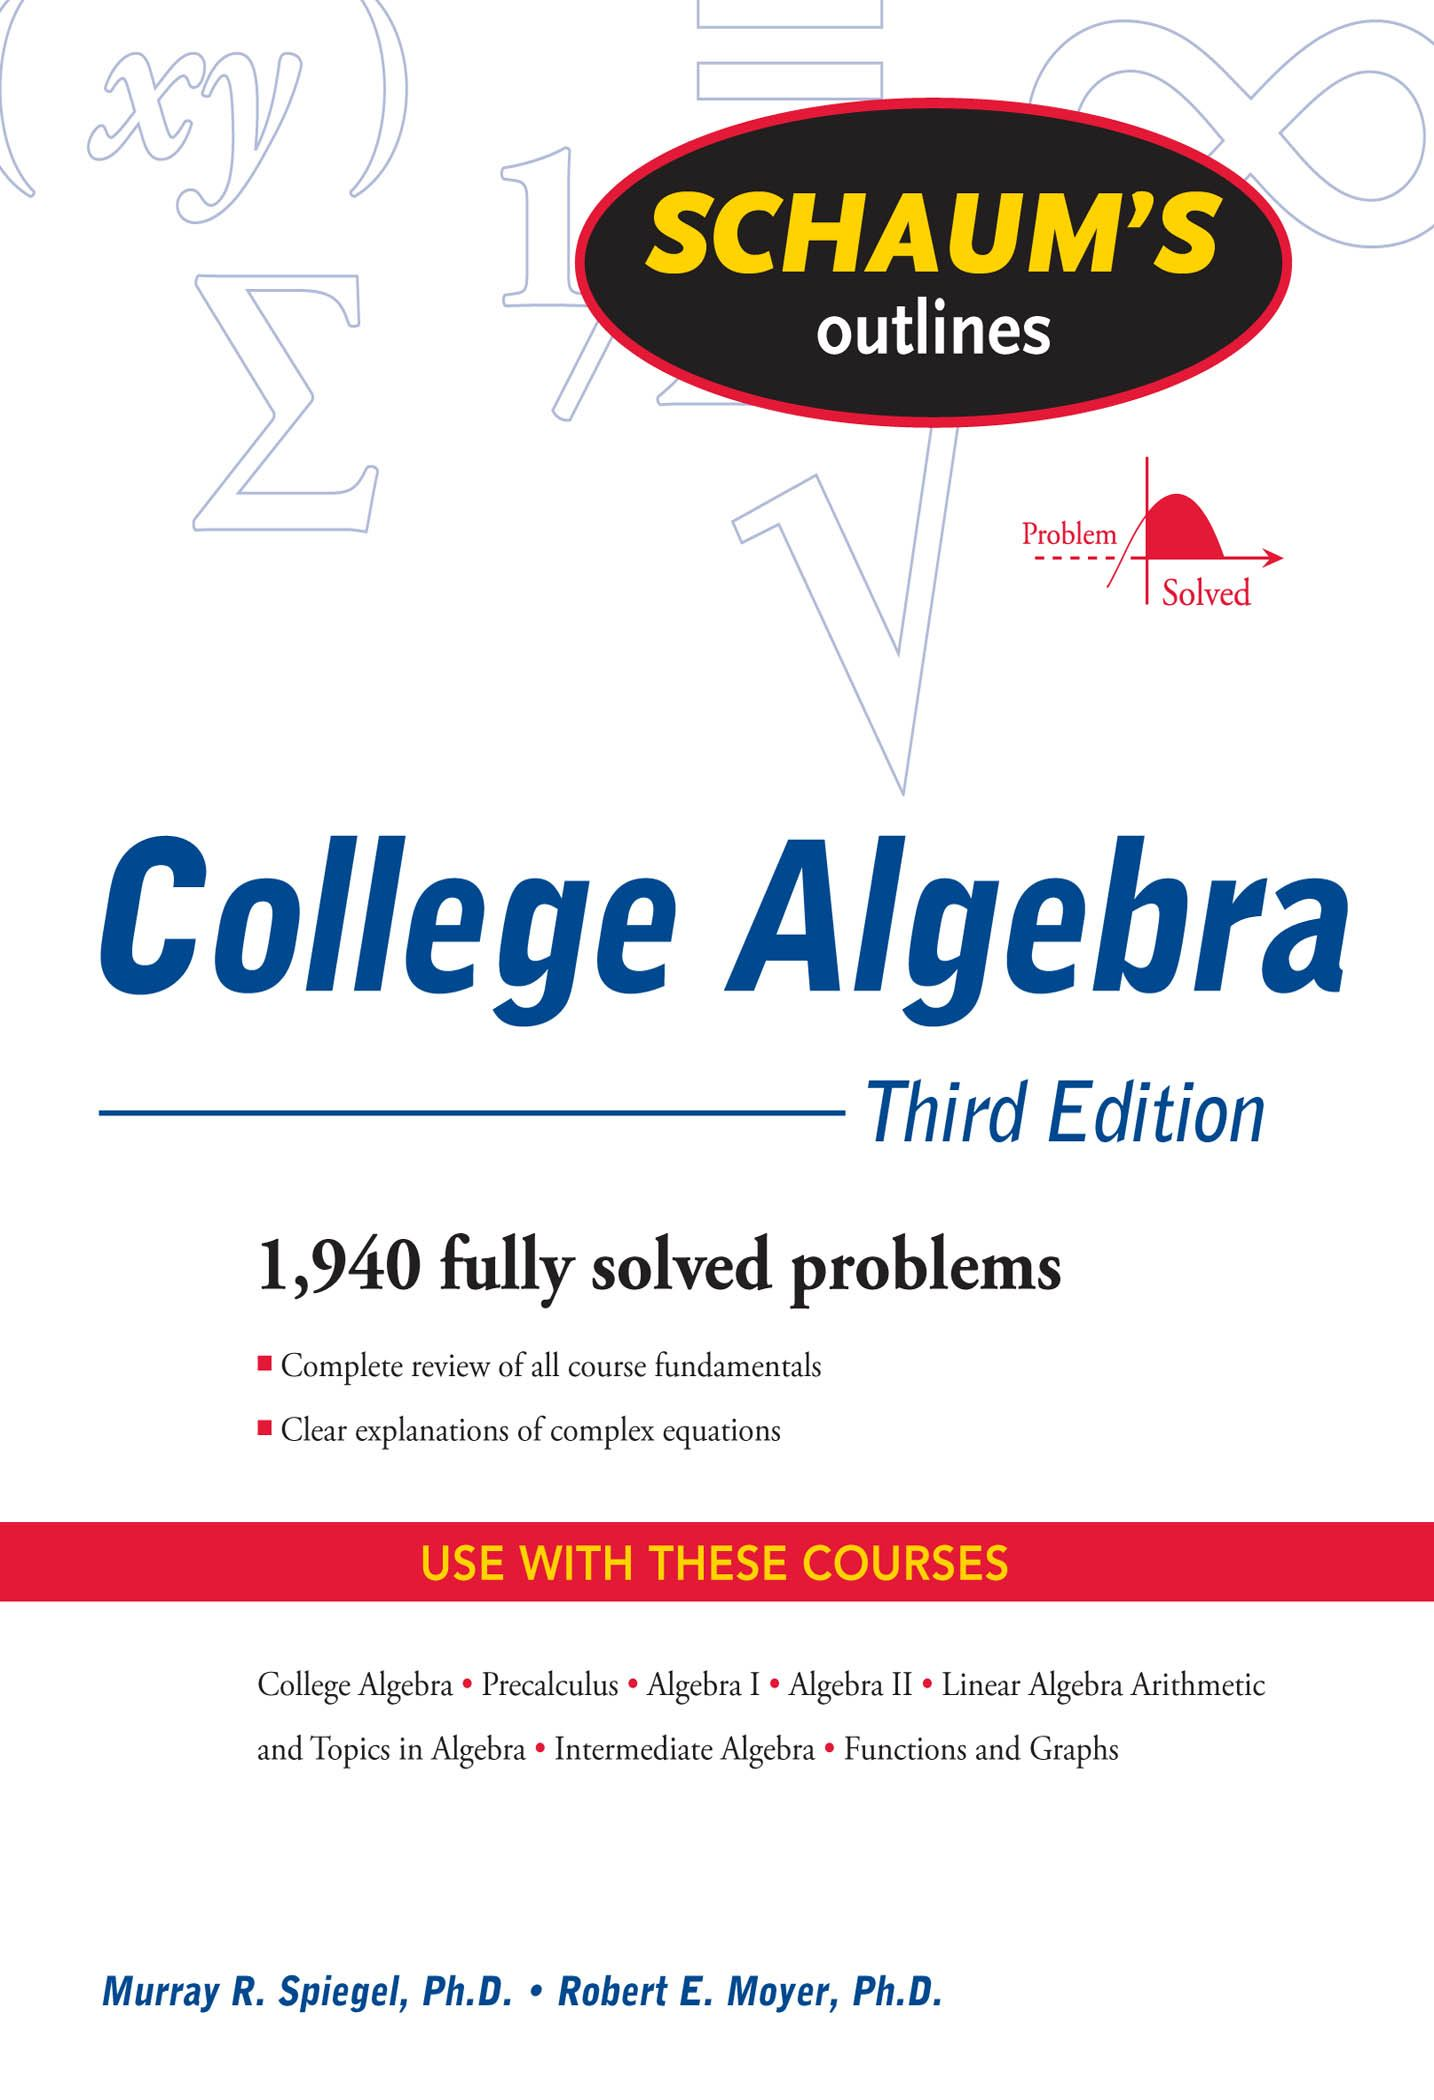 Schaum's Outline of College Algebra, Third Edition By: Murray Spiegel,Robert Moyer